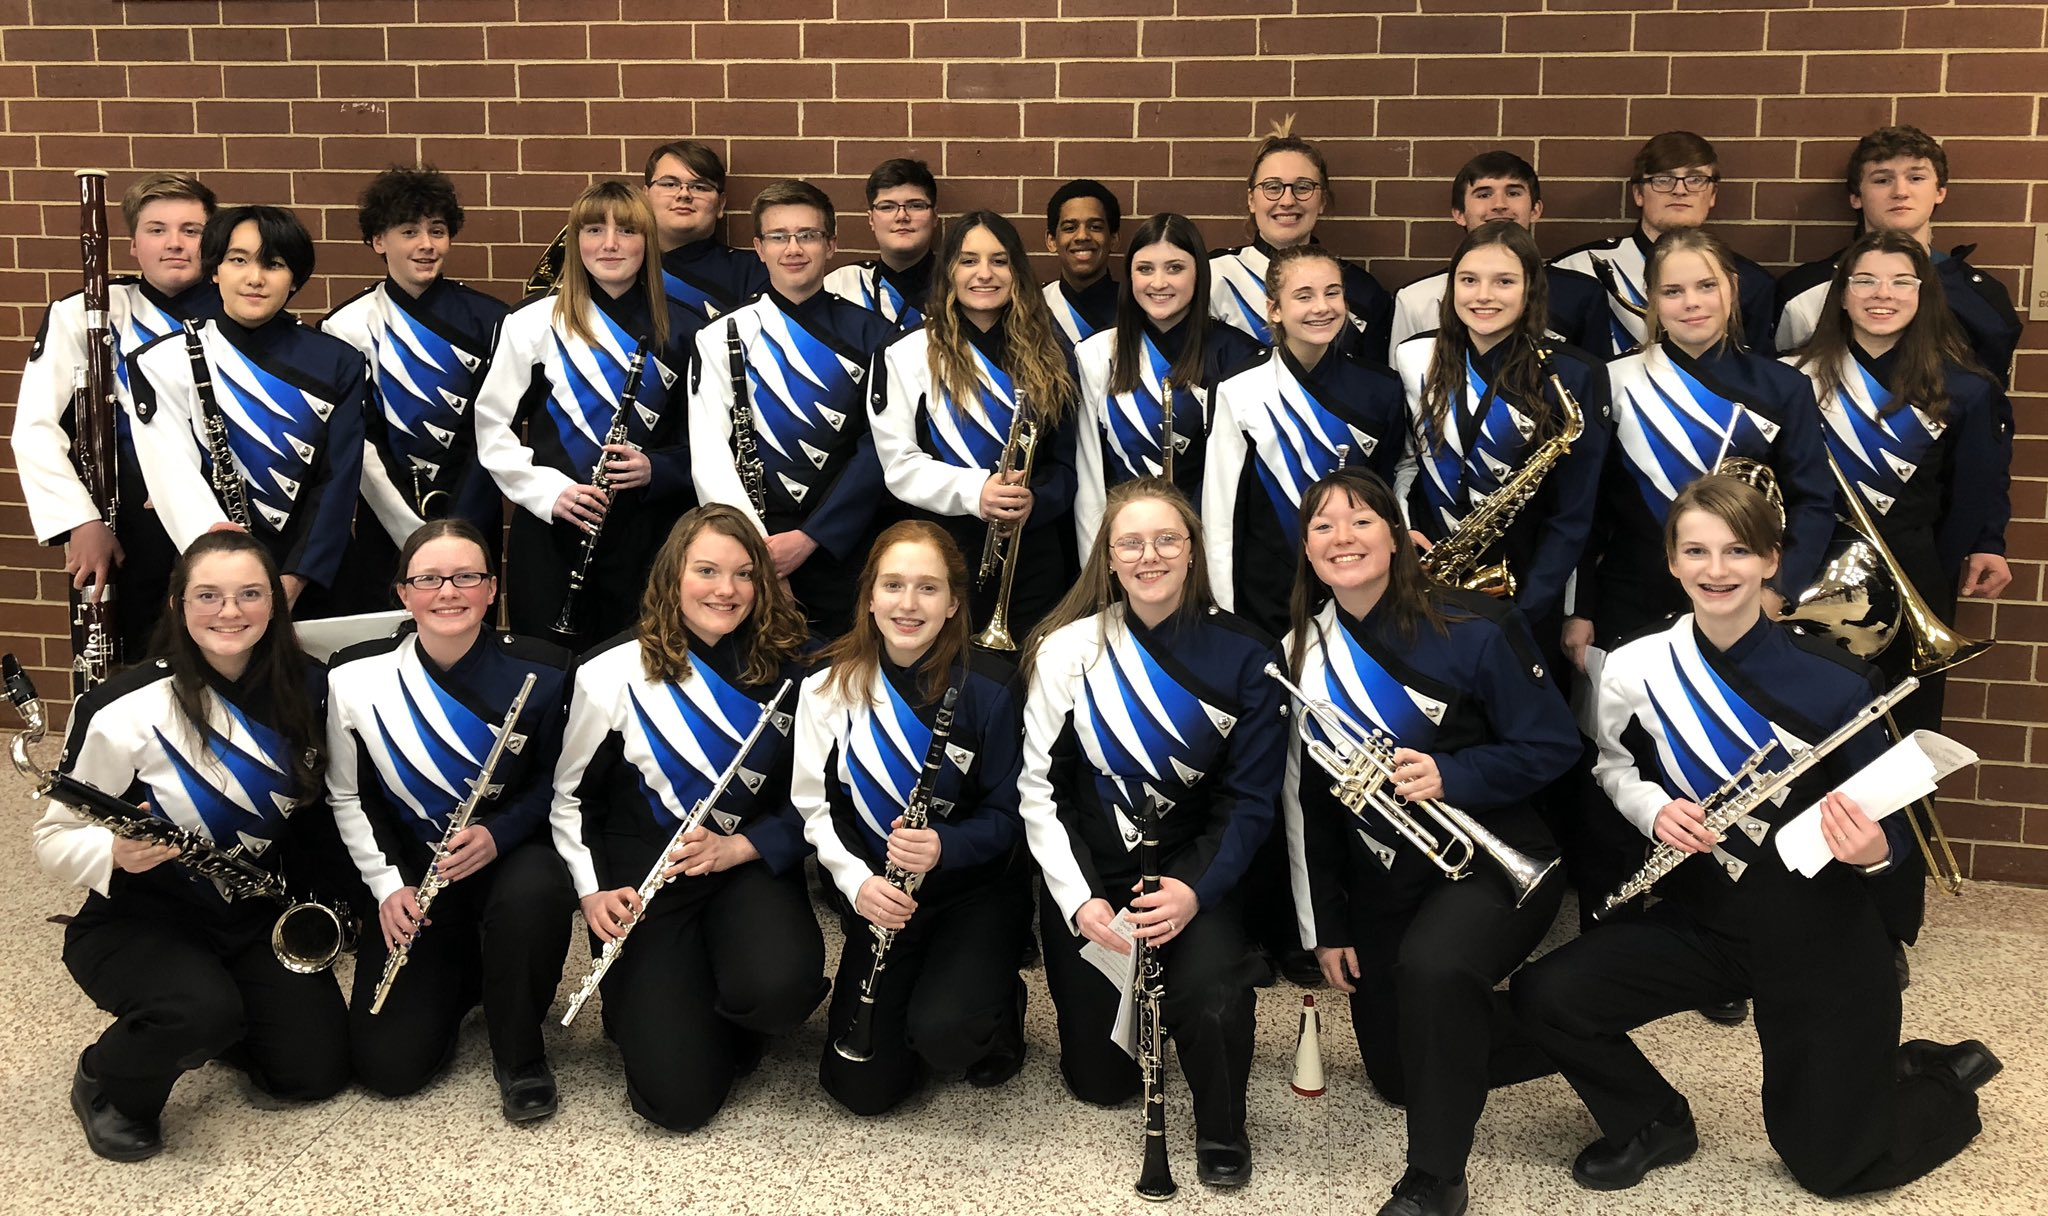 SWIBA Honor band at 7 at Atlantic HS. Go Band! https://t.co/5meZNZEXOV